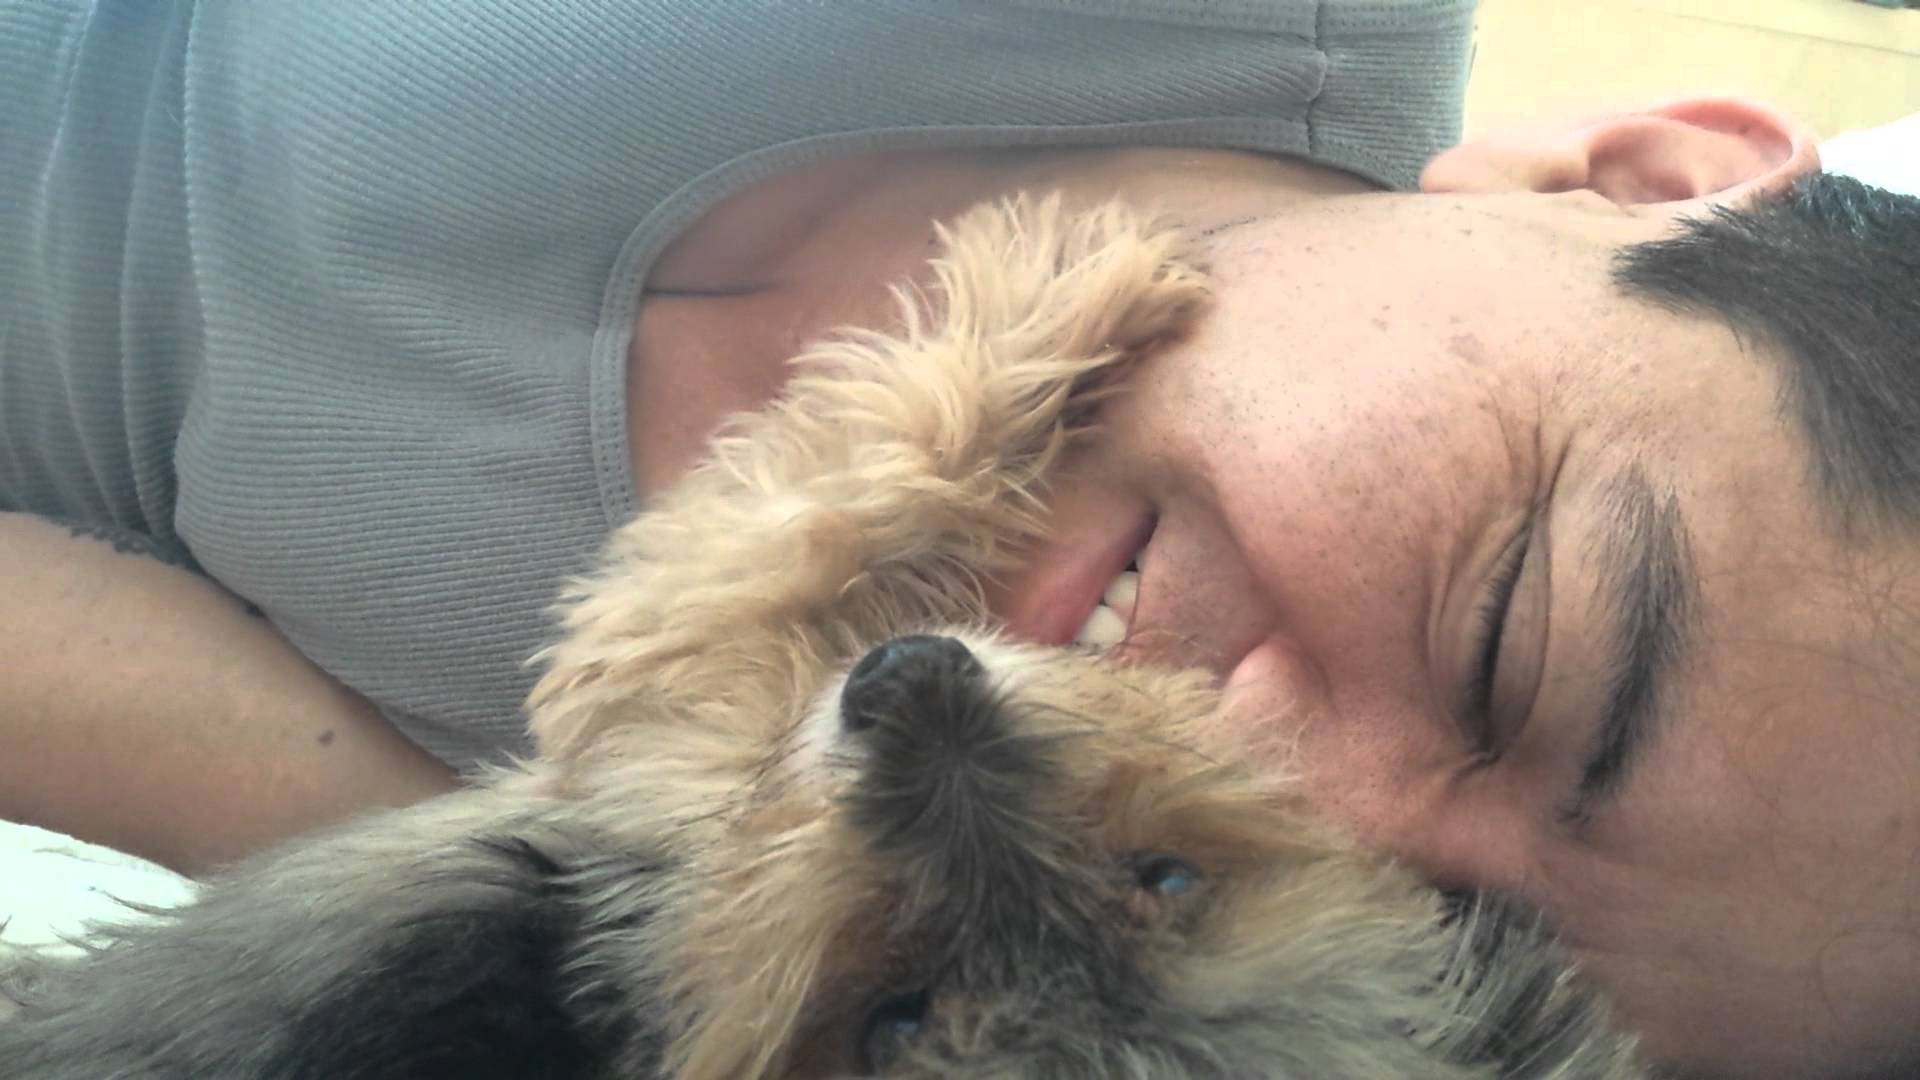 Tiny Yorkshire Terrier Lovingly Pets His Human's Face While He's Sleeping